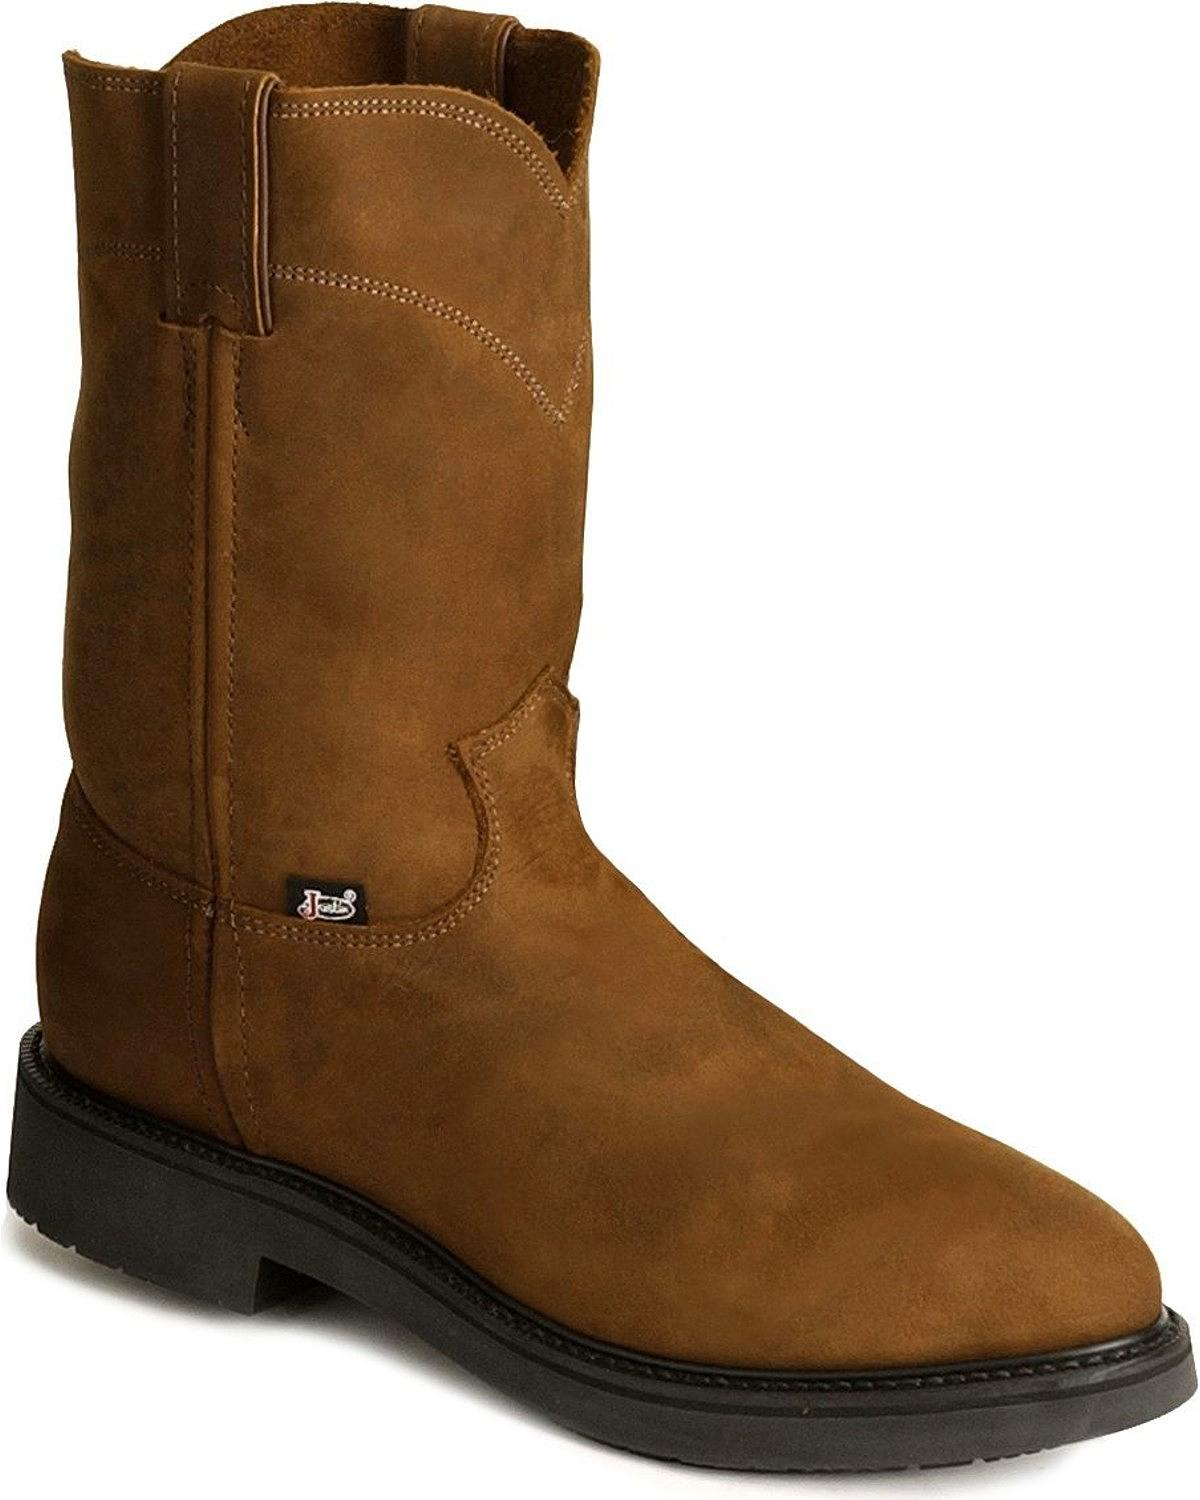 Jow Men S Justin Original Work Boot Pull On Round Toe